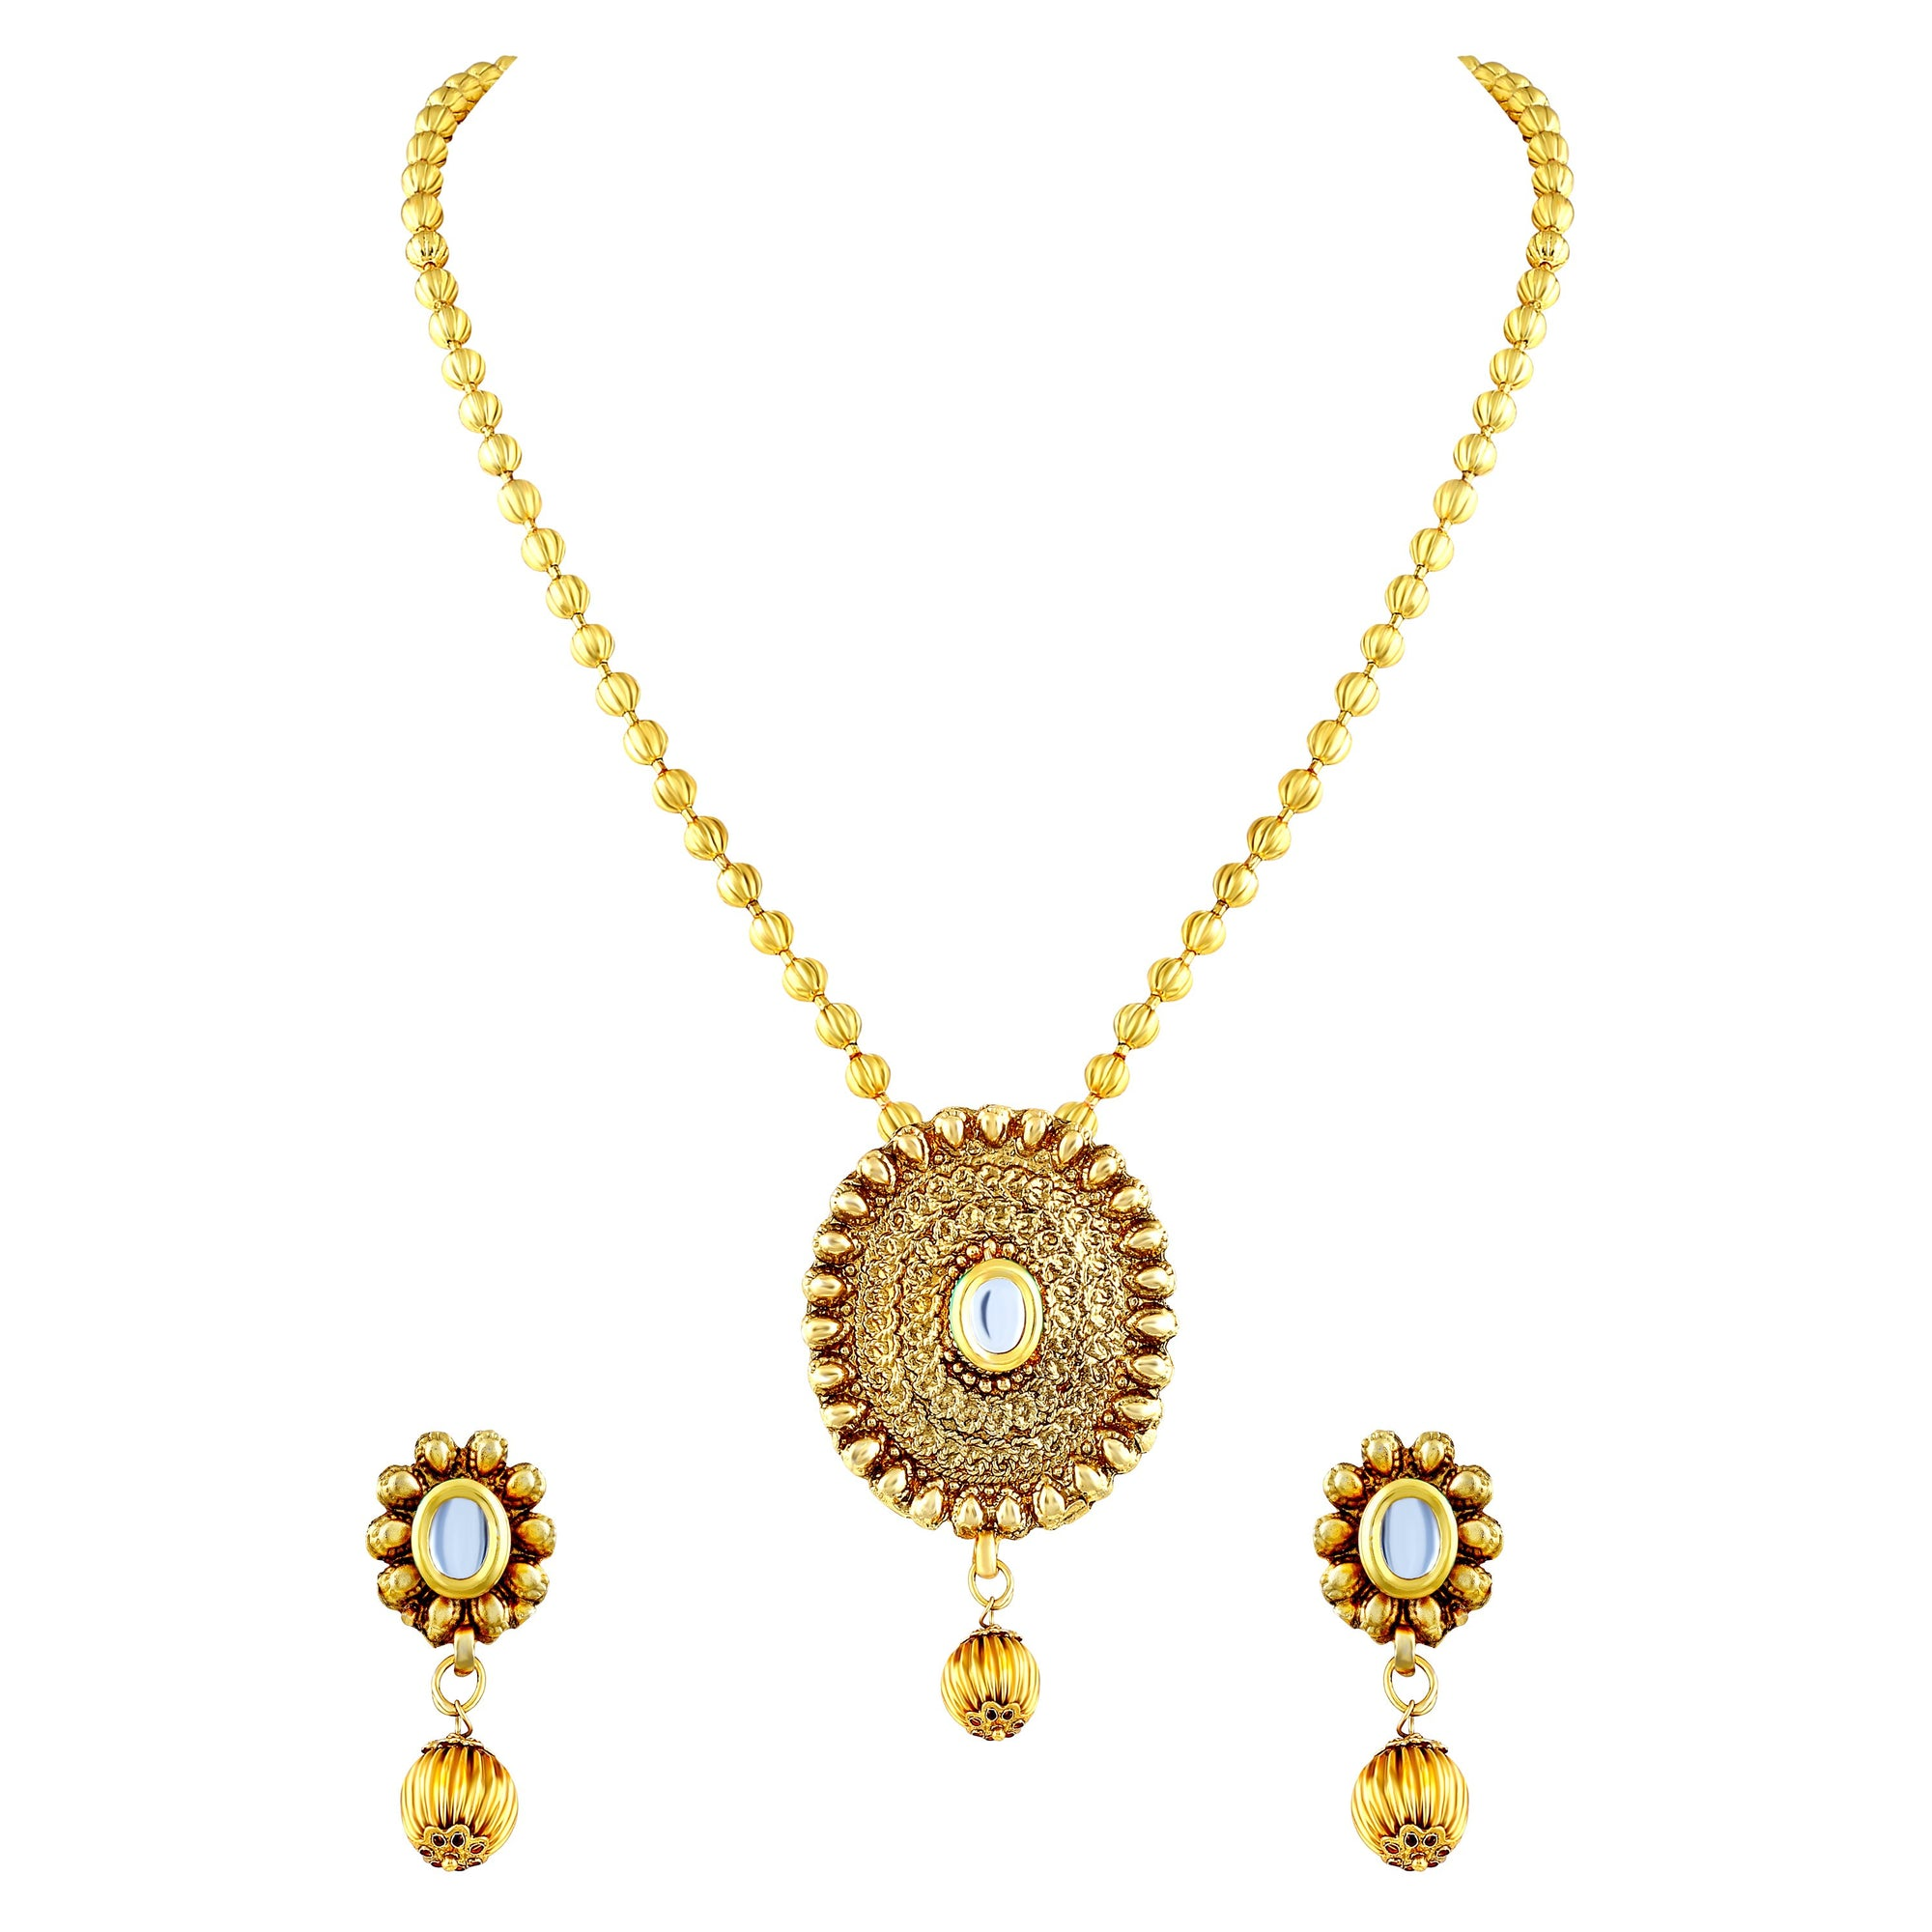 Asmitta Jewellery Alloy Jewel Set (Gold) -PS169